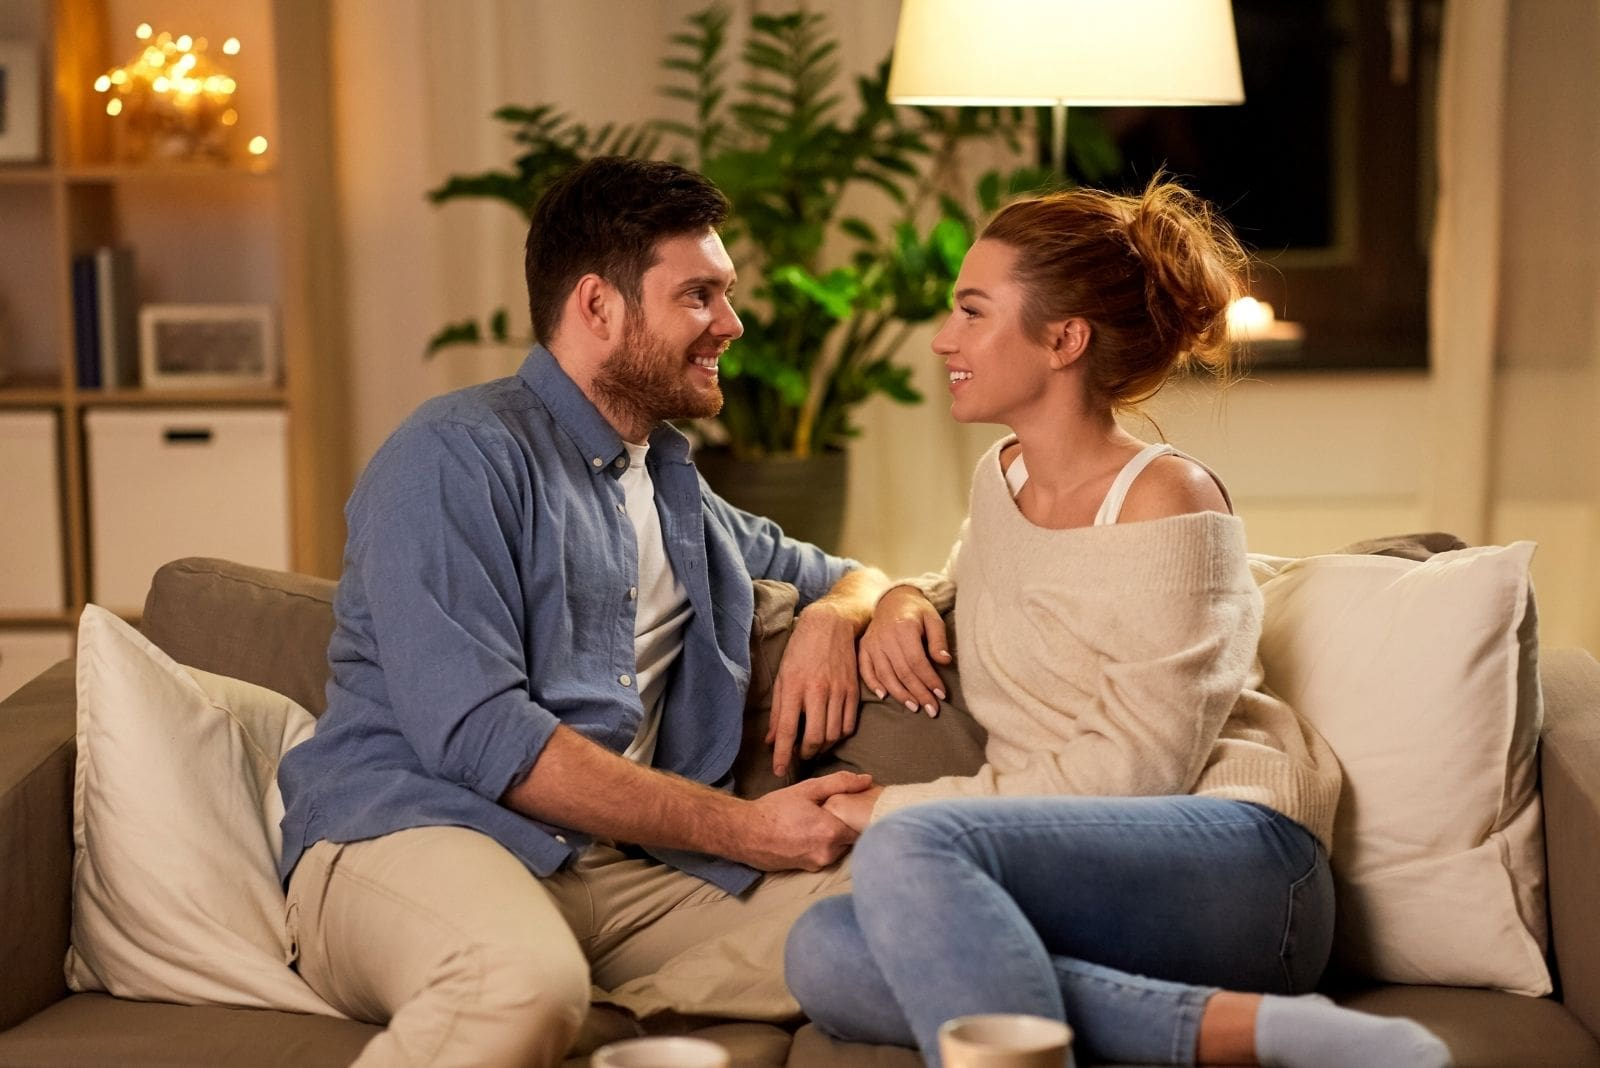 couple talking at home sitting in the couch